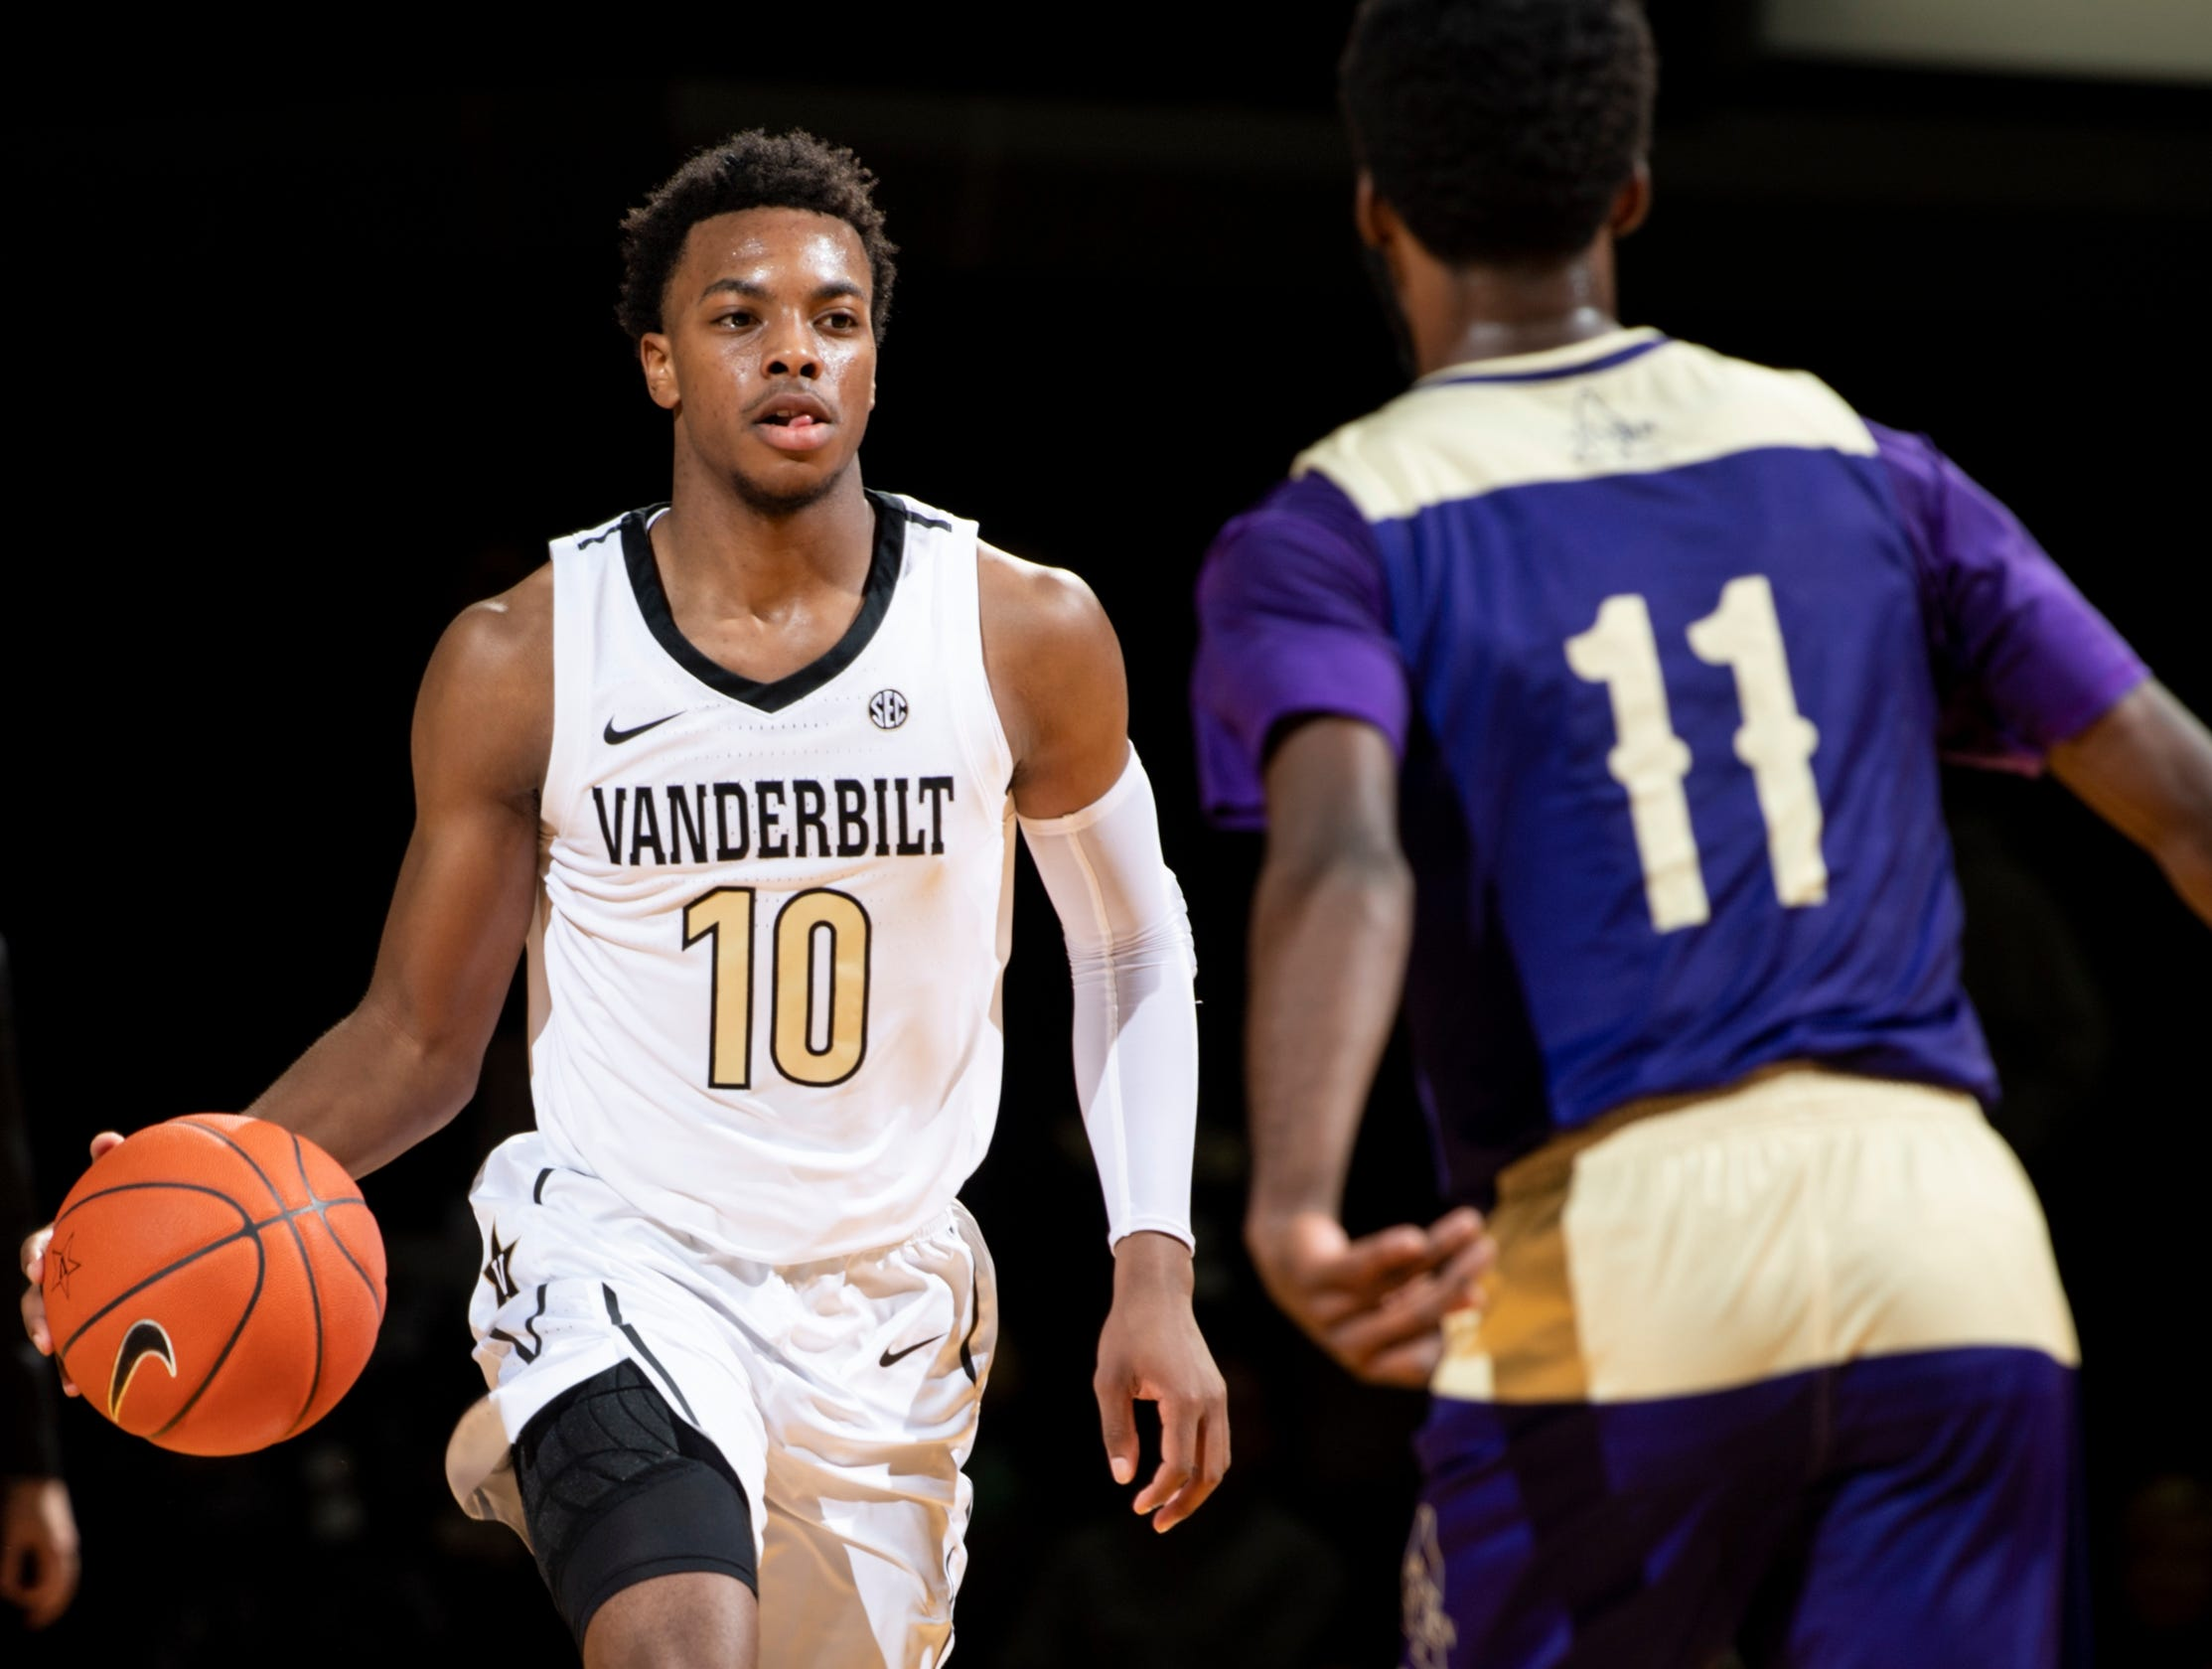 Vanderbilt guard Darius Garland (10) advances into Alcorn State guard Maurice Howard (11) during the first half at Memorial Gym in Nashville, Tenn., Friday, Nov. 16, 2018.